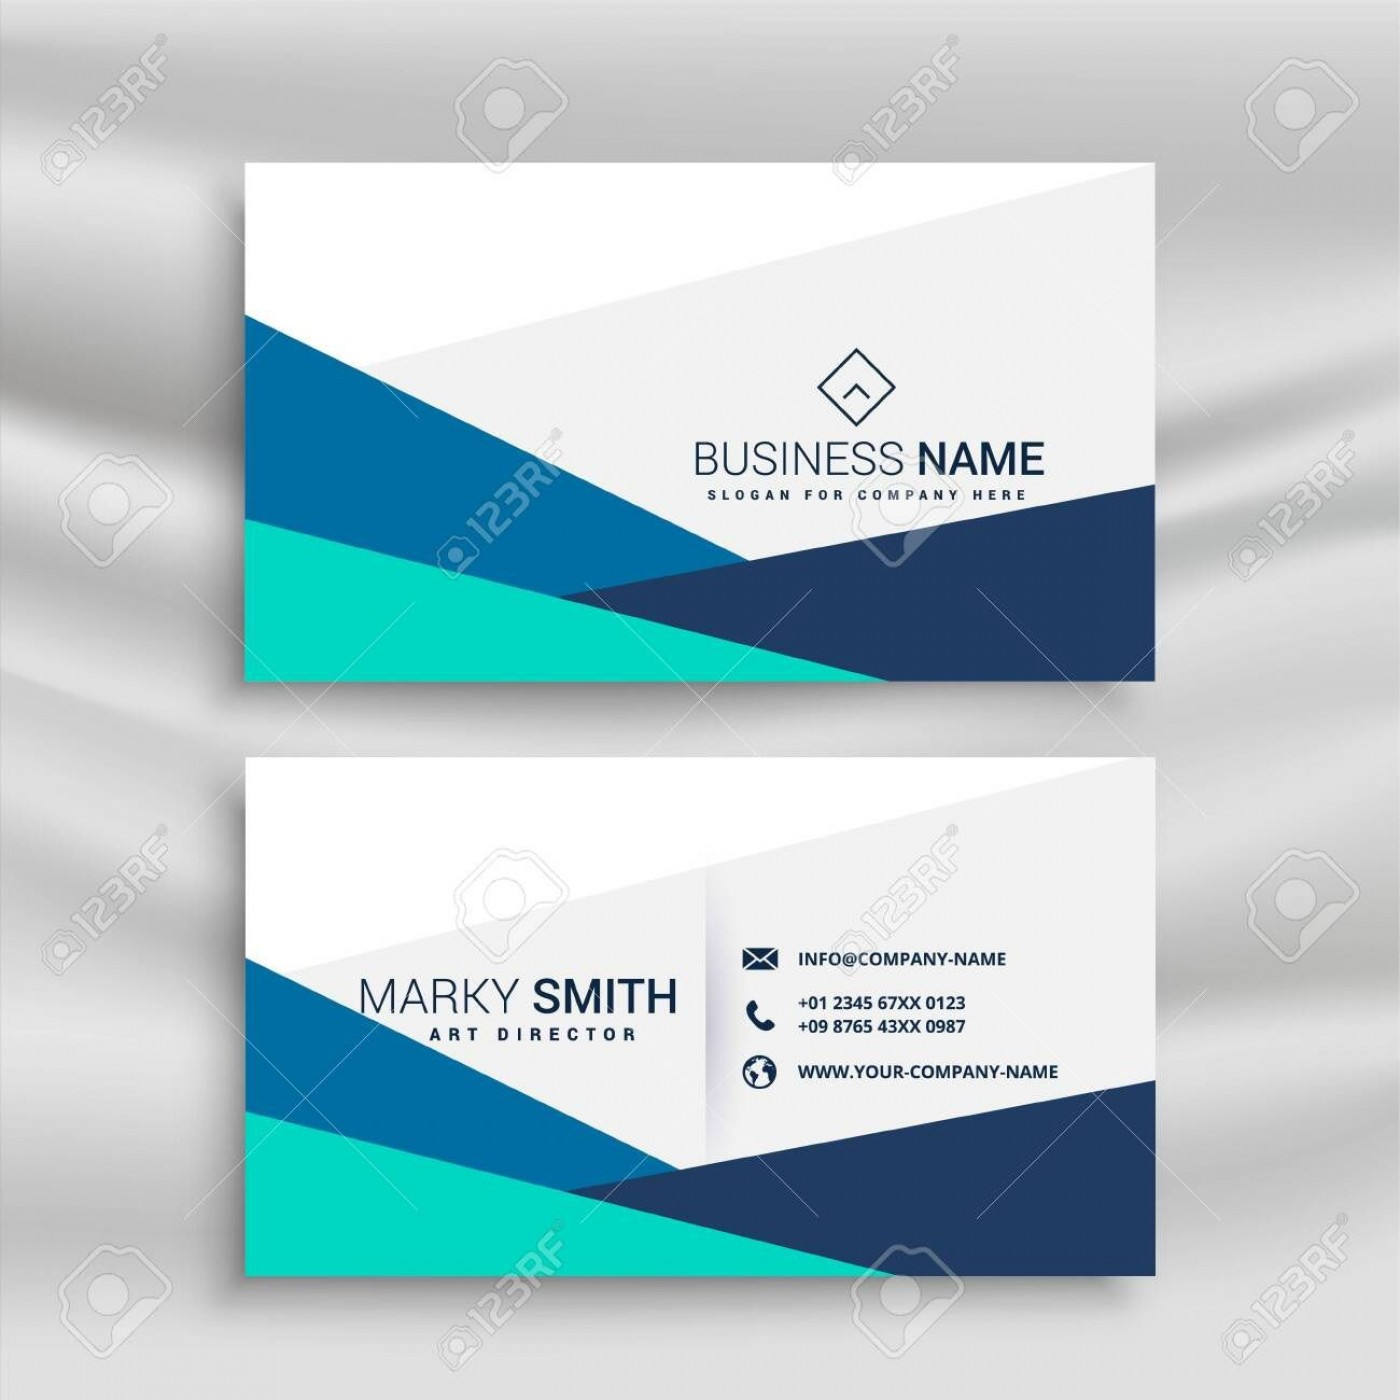 001 Sensational Simple Visiting Card Design Example  Calling Busines Template Free In Photoshop1400